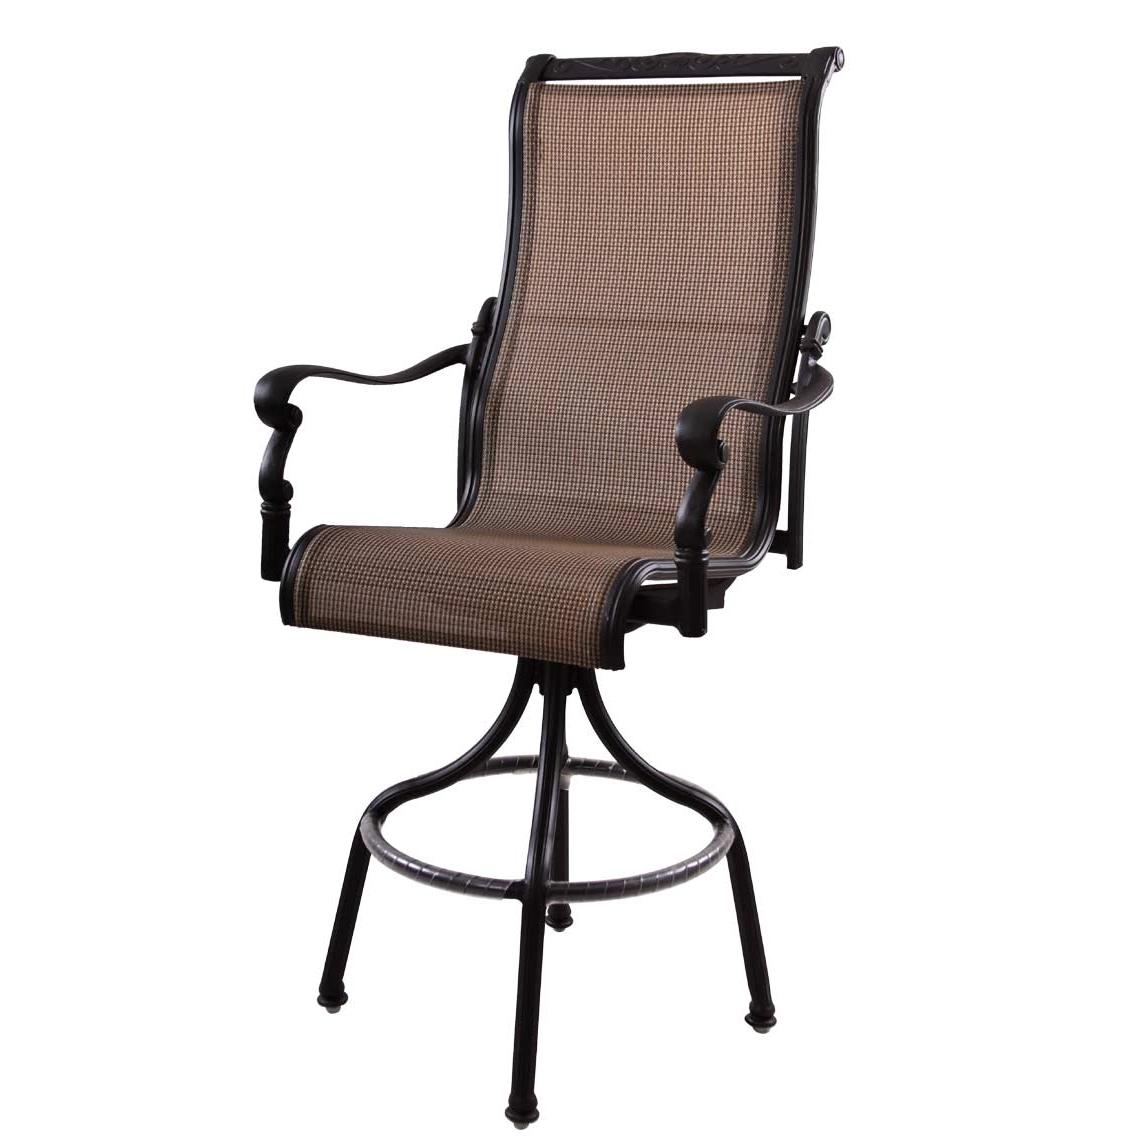 Balcony Height Patio Chairs Patio Furniture Aluminum Sling Pub Chair High Back Swivel